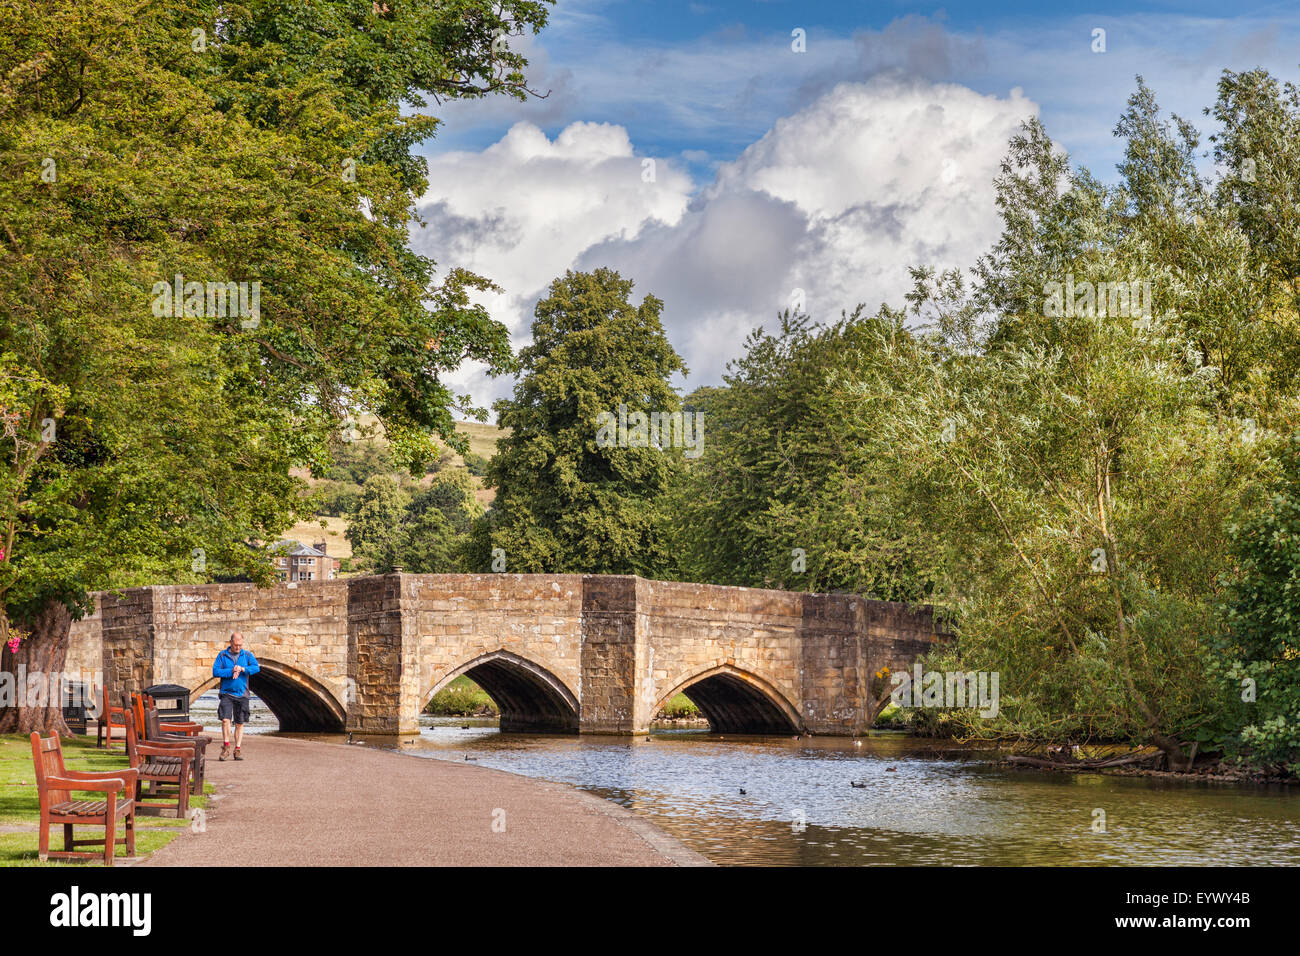 A man looking at his watch as he walks beside the River Wye, in front 5 arch bridge built 700 years ago, Bakewell, - Stock Image